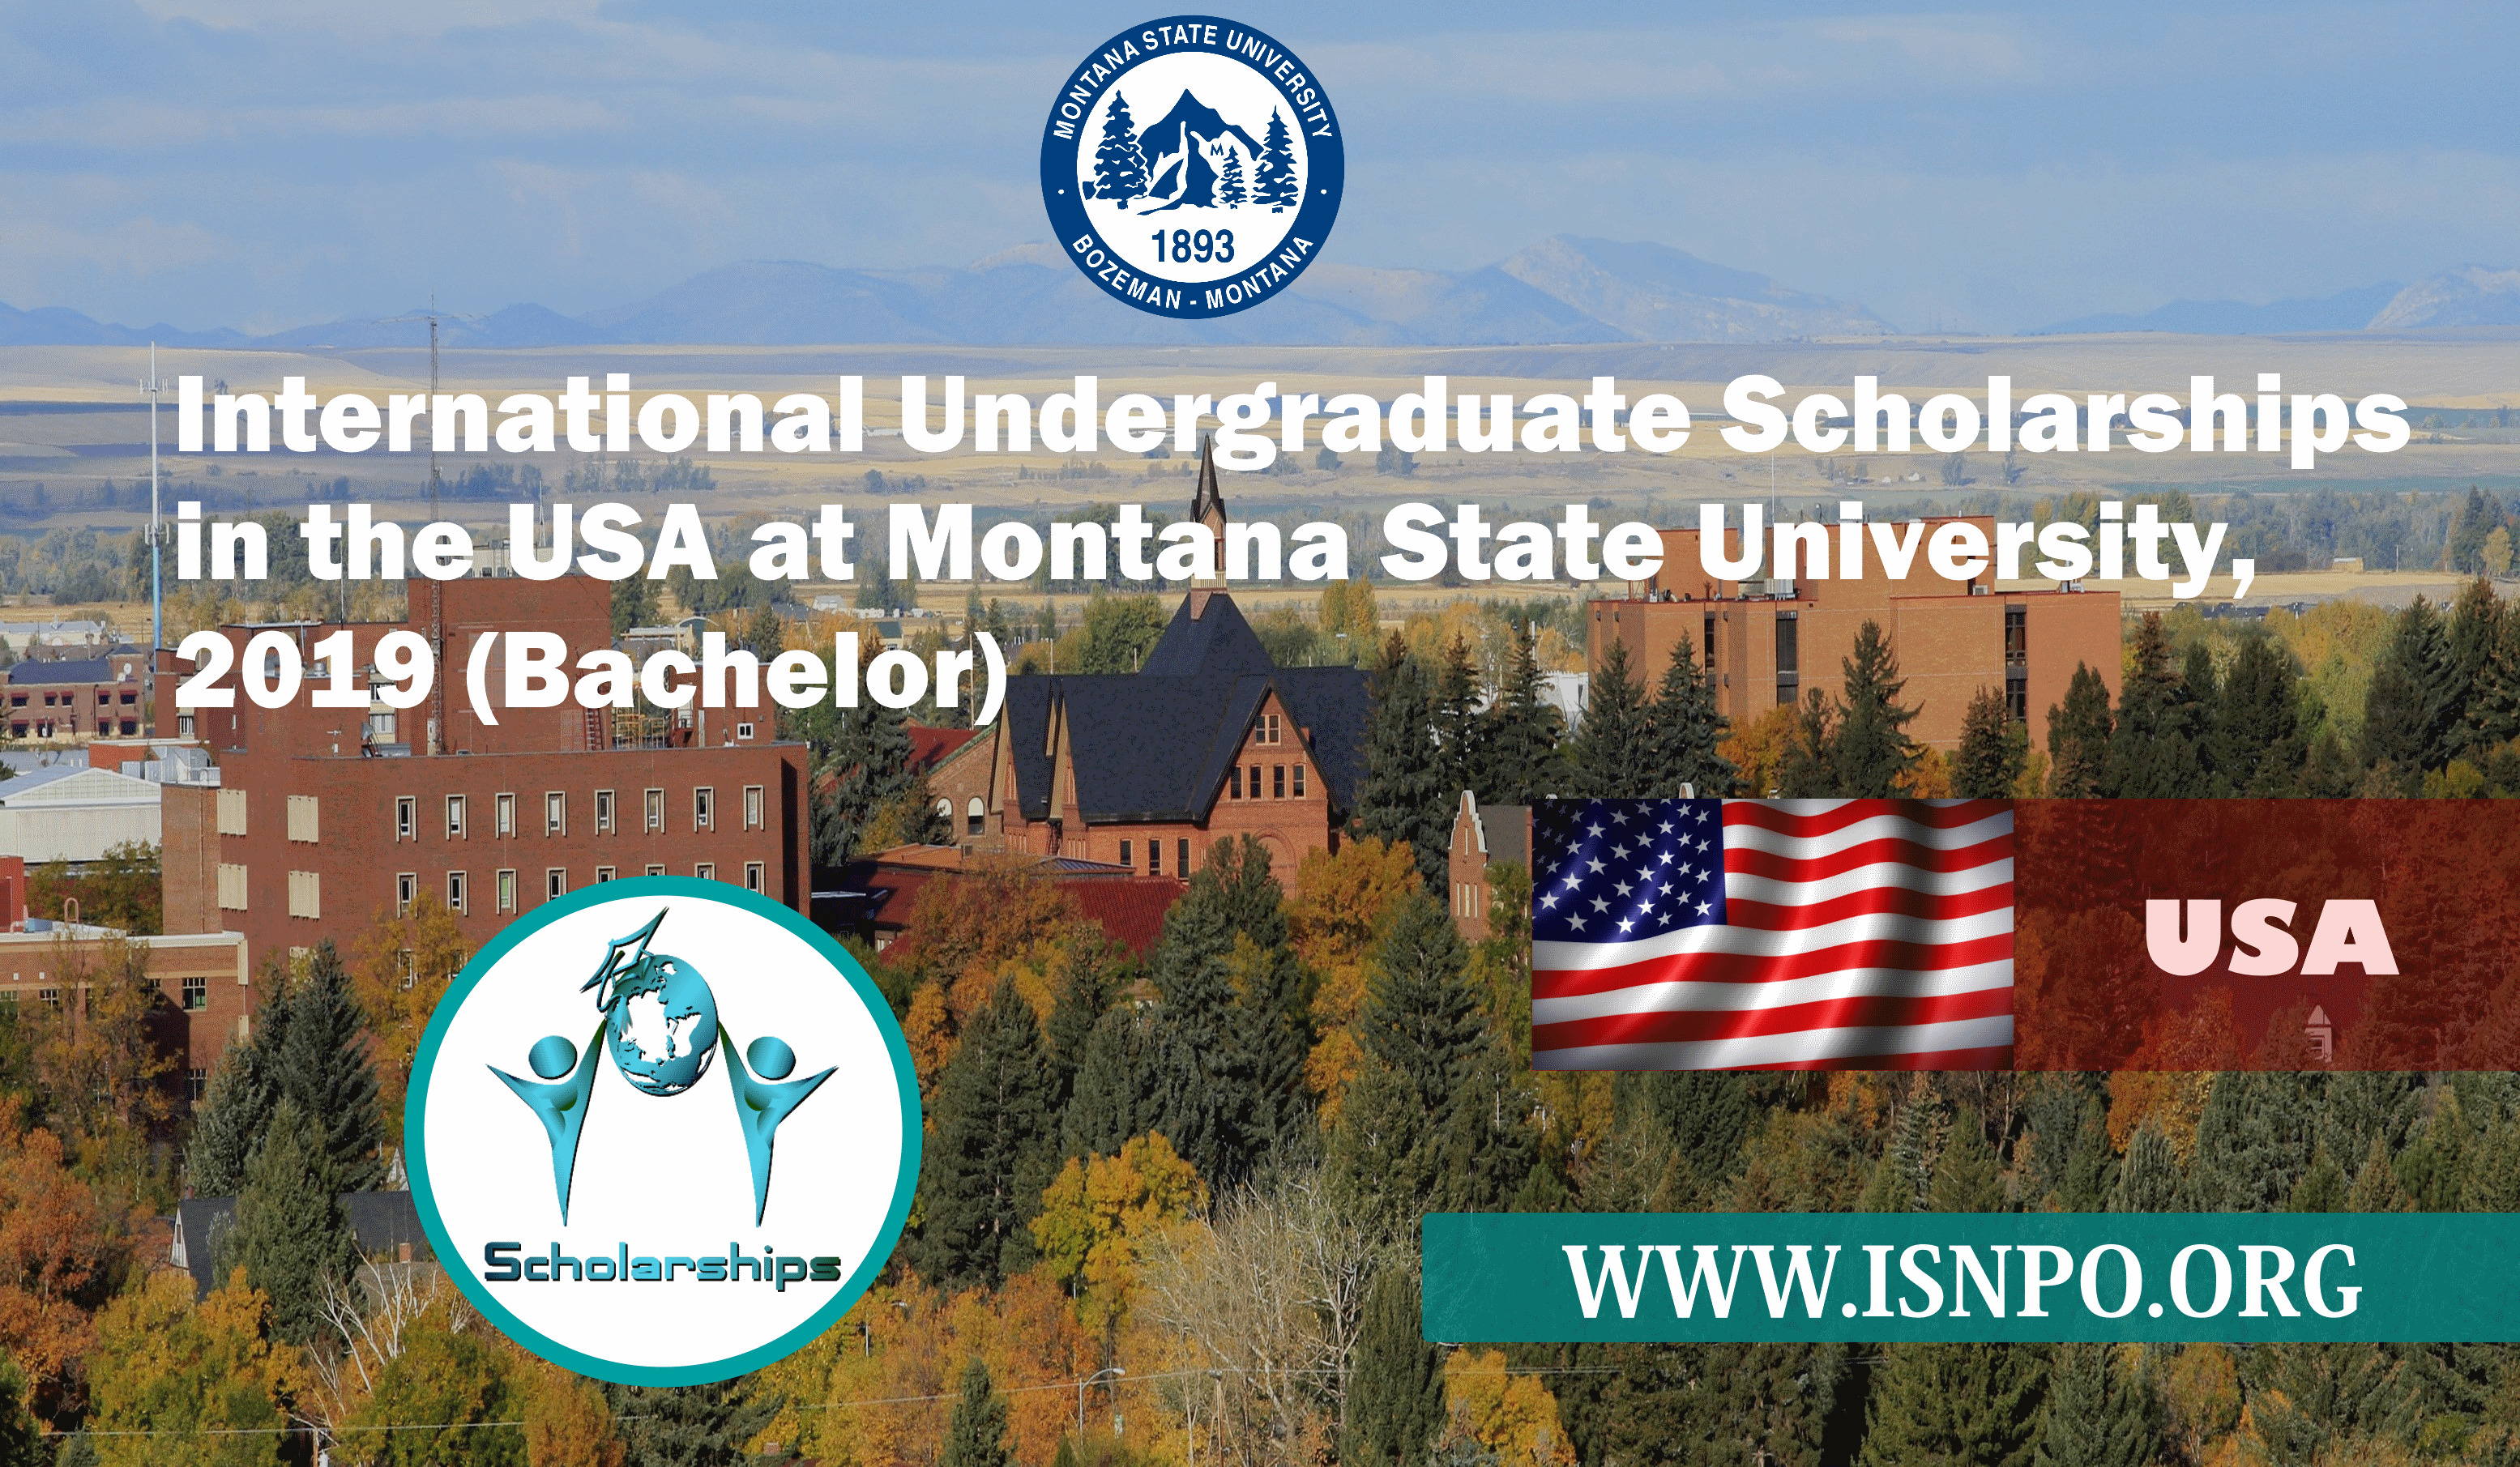 International Undergrad Scholarships in U.S.A. at Montana State University, 2019